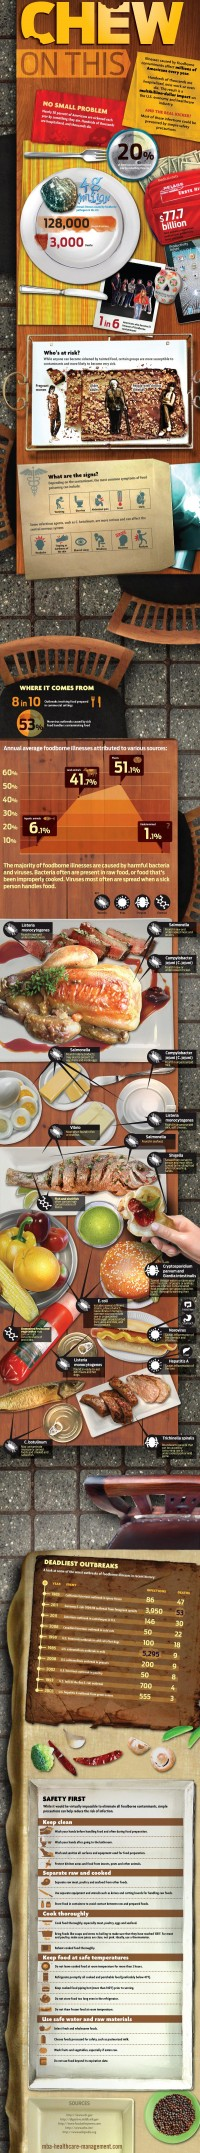 Chew On This: Impact of Food-Borne Illnesses